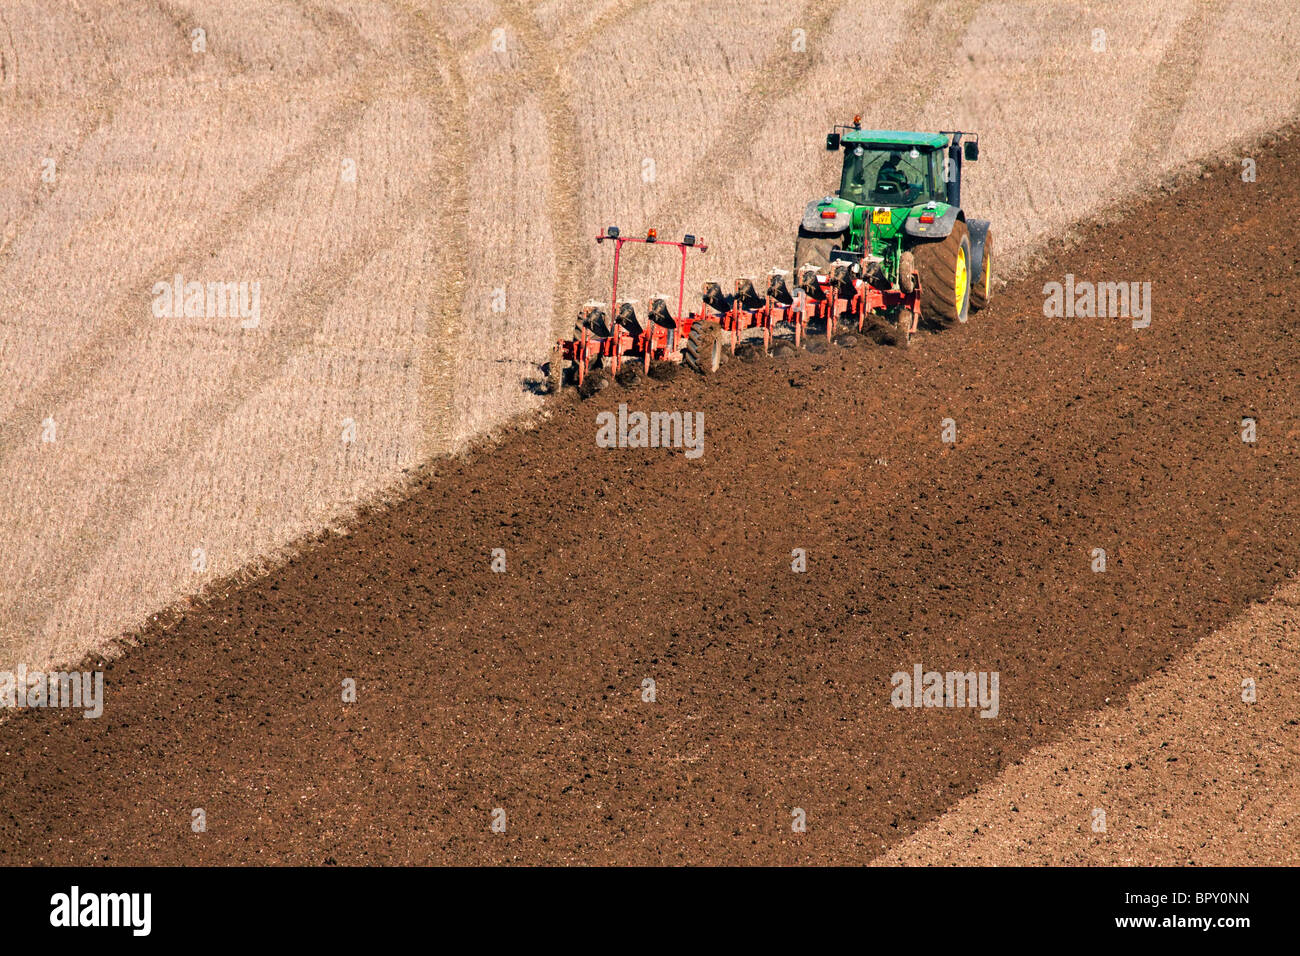 A tractor and plough ploughing a field - Stock Image